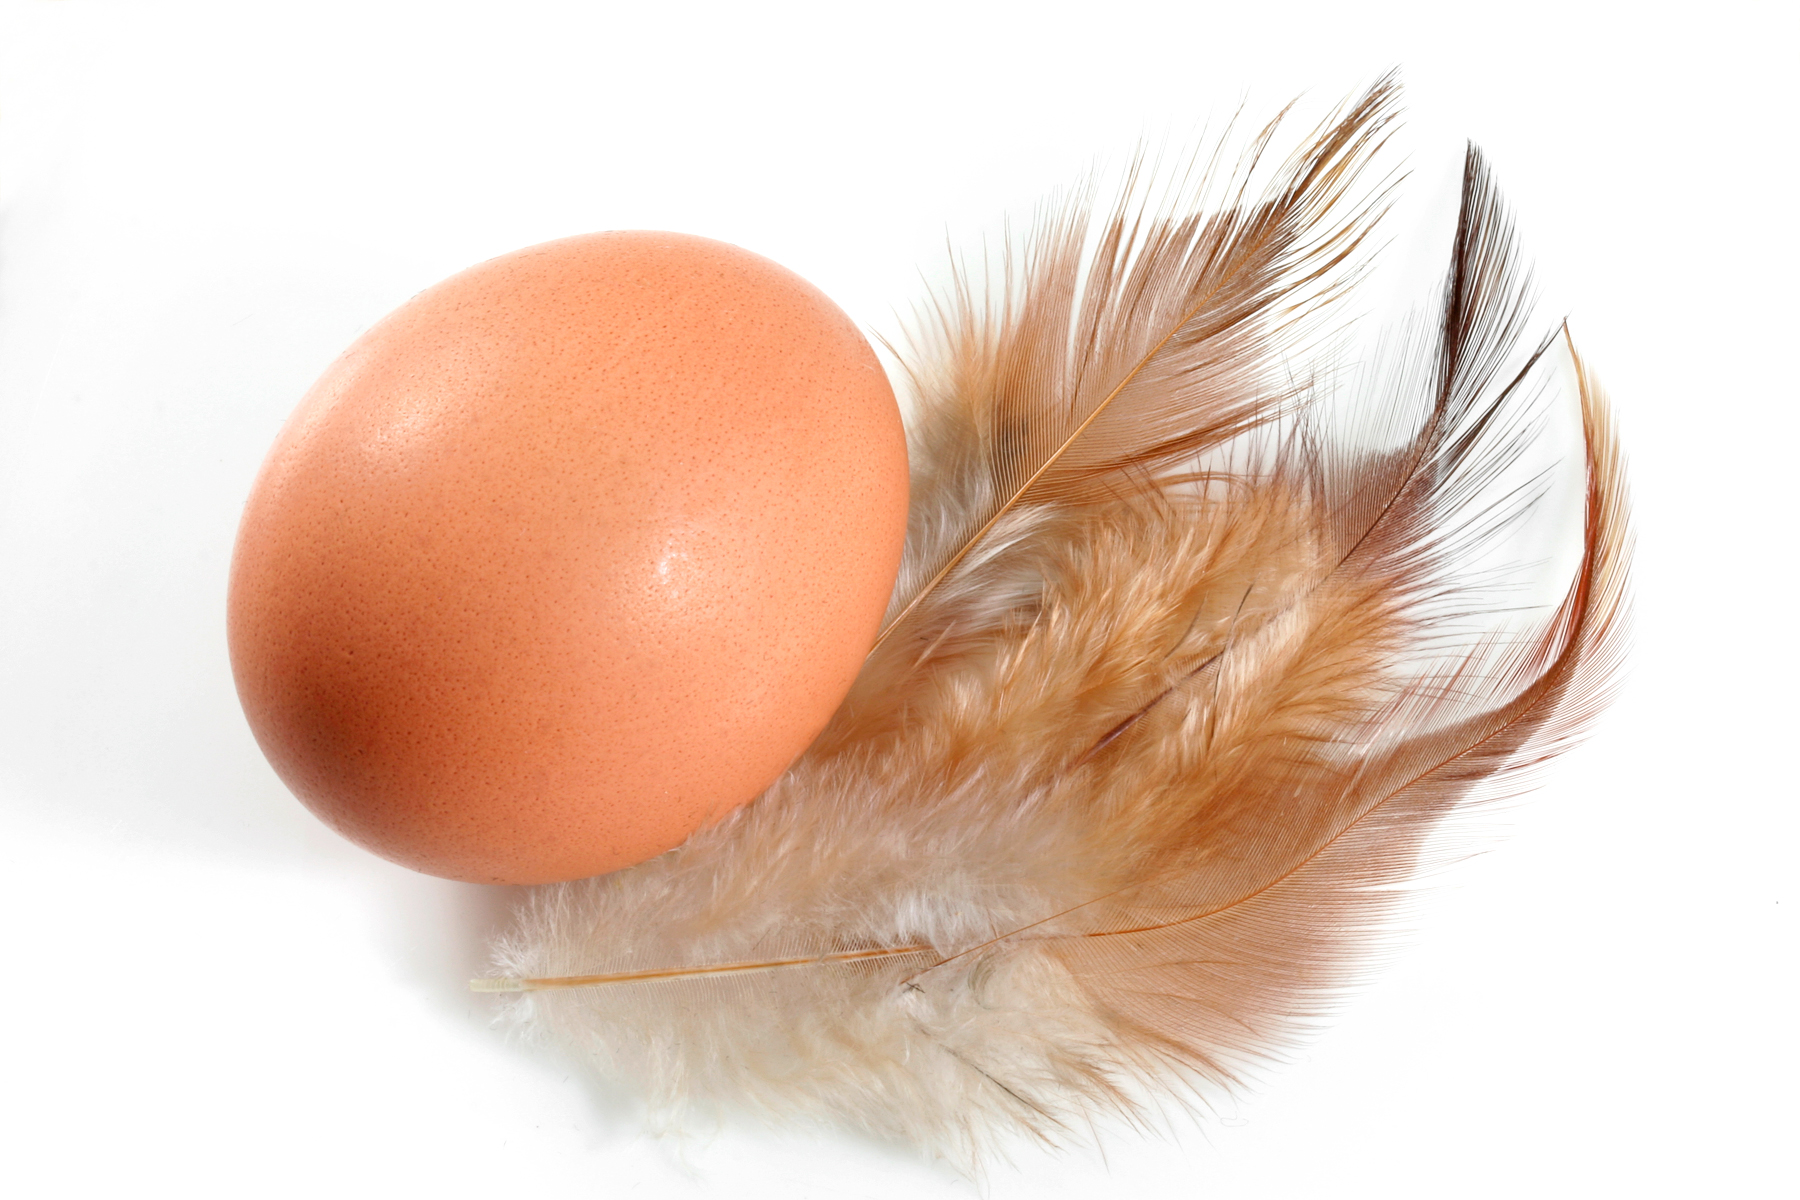 Egg and Feathers, Avian, Organic, Isolated, Isolation, HQ Photo